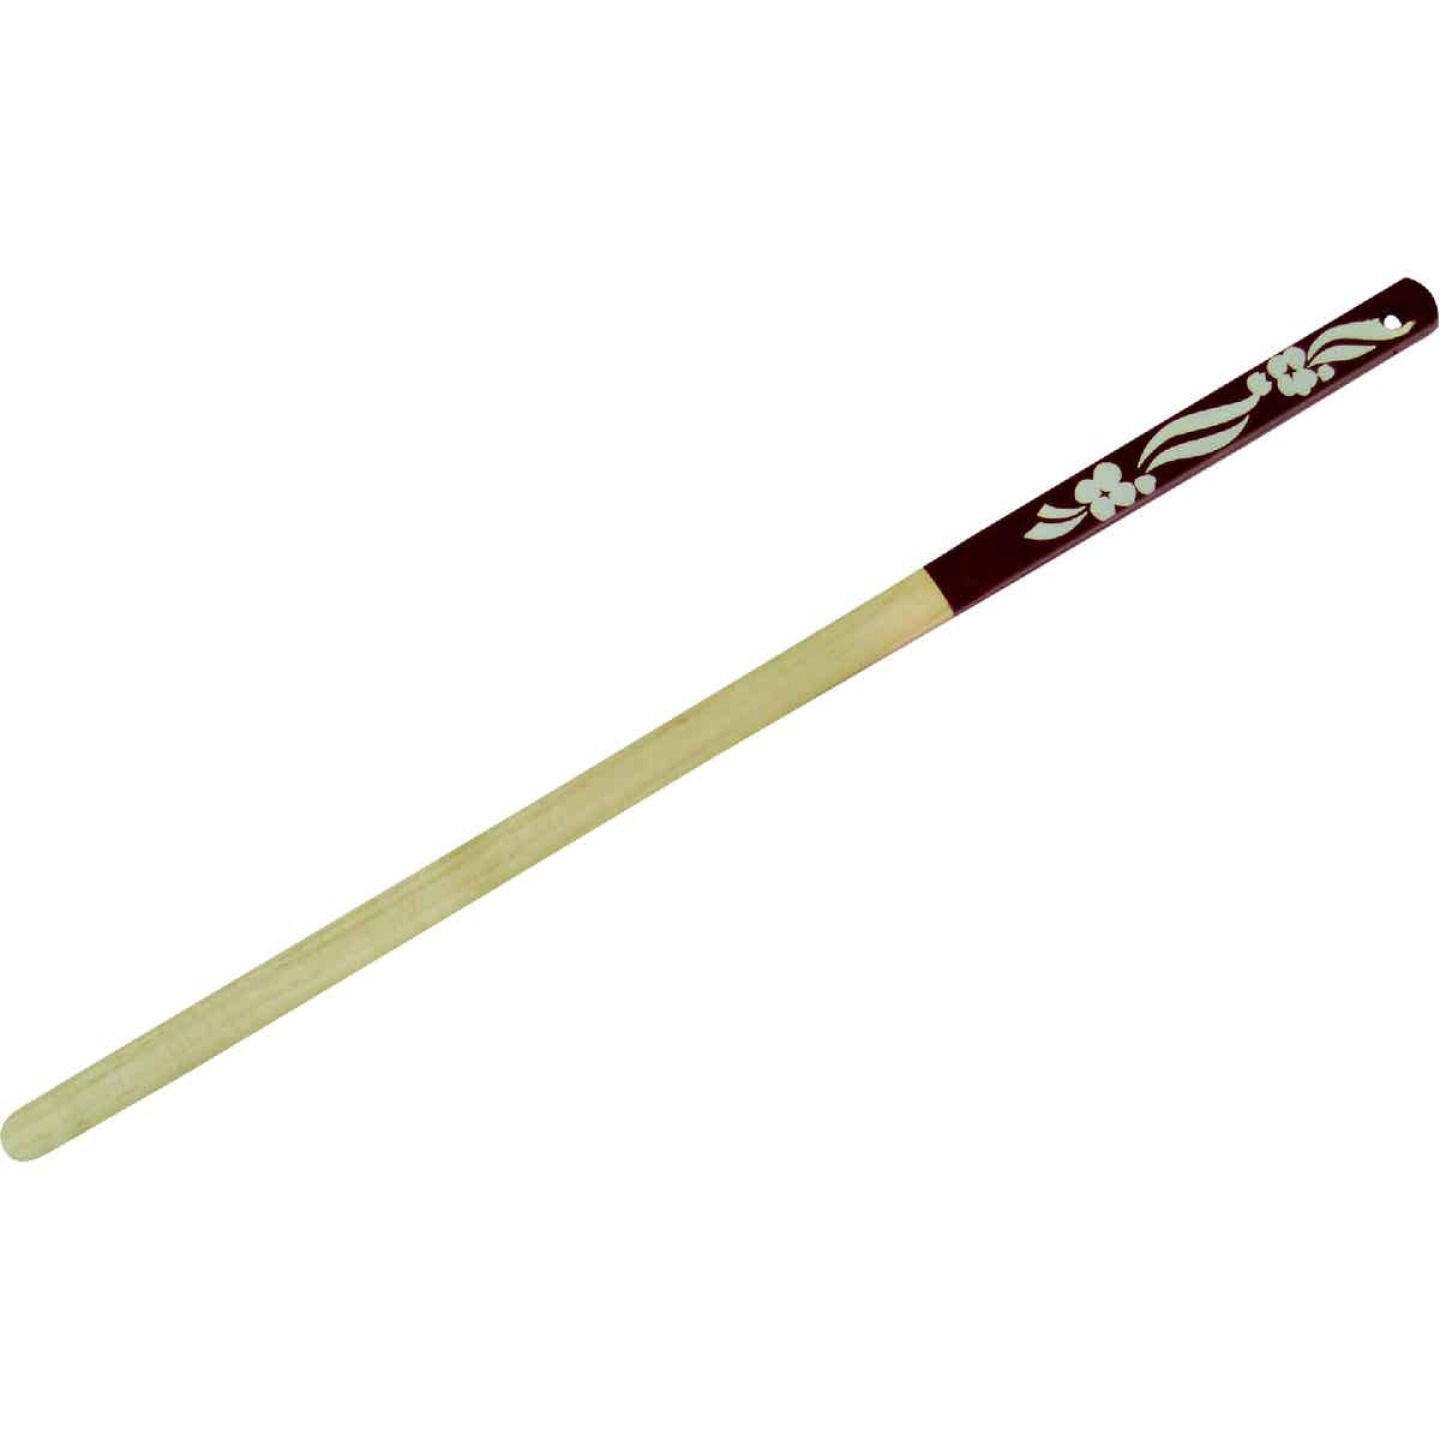 Lefse 24 In. Wood Turning Stick Image 1